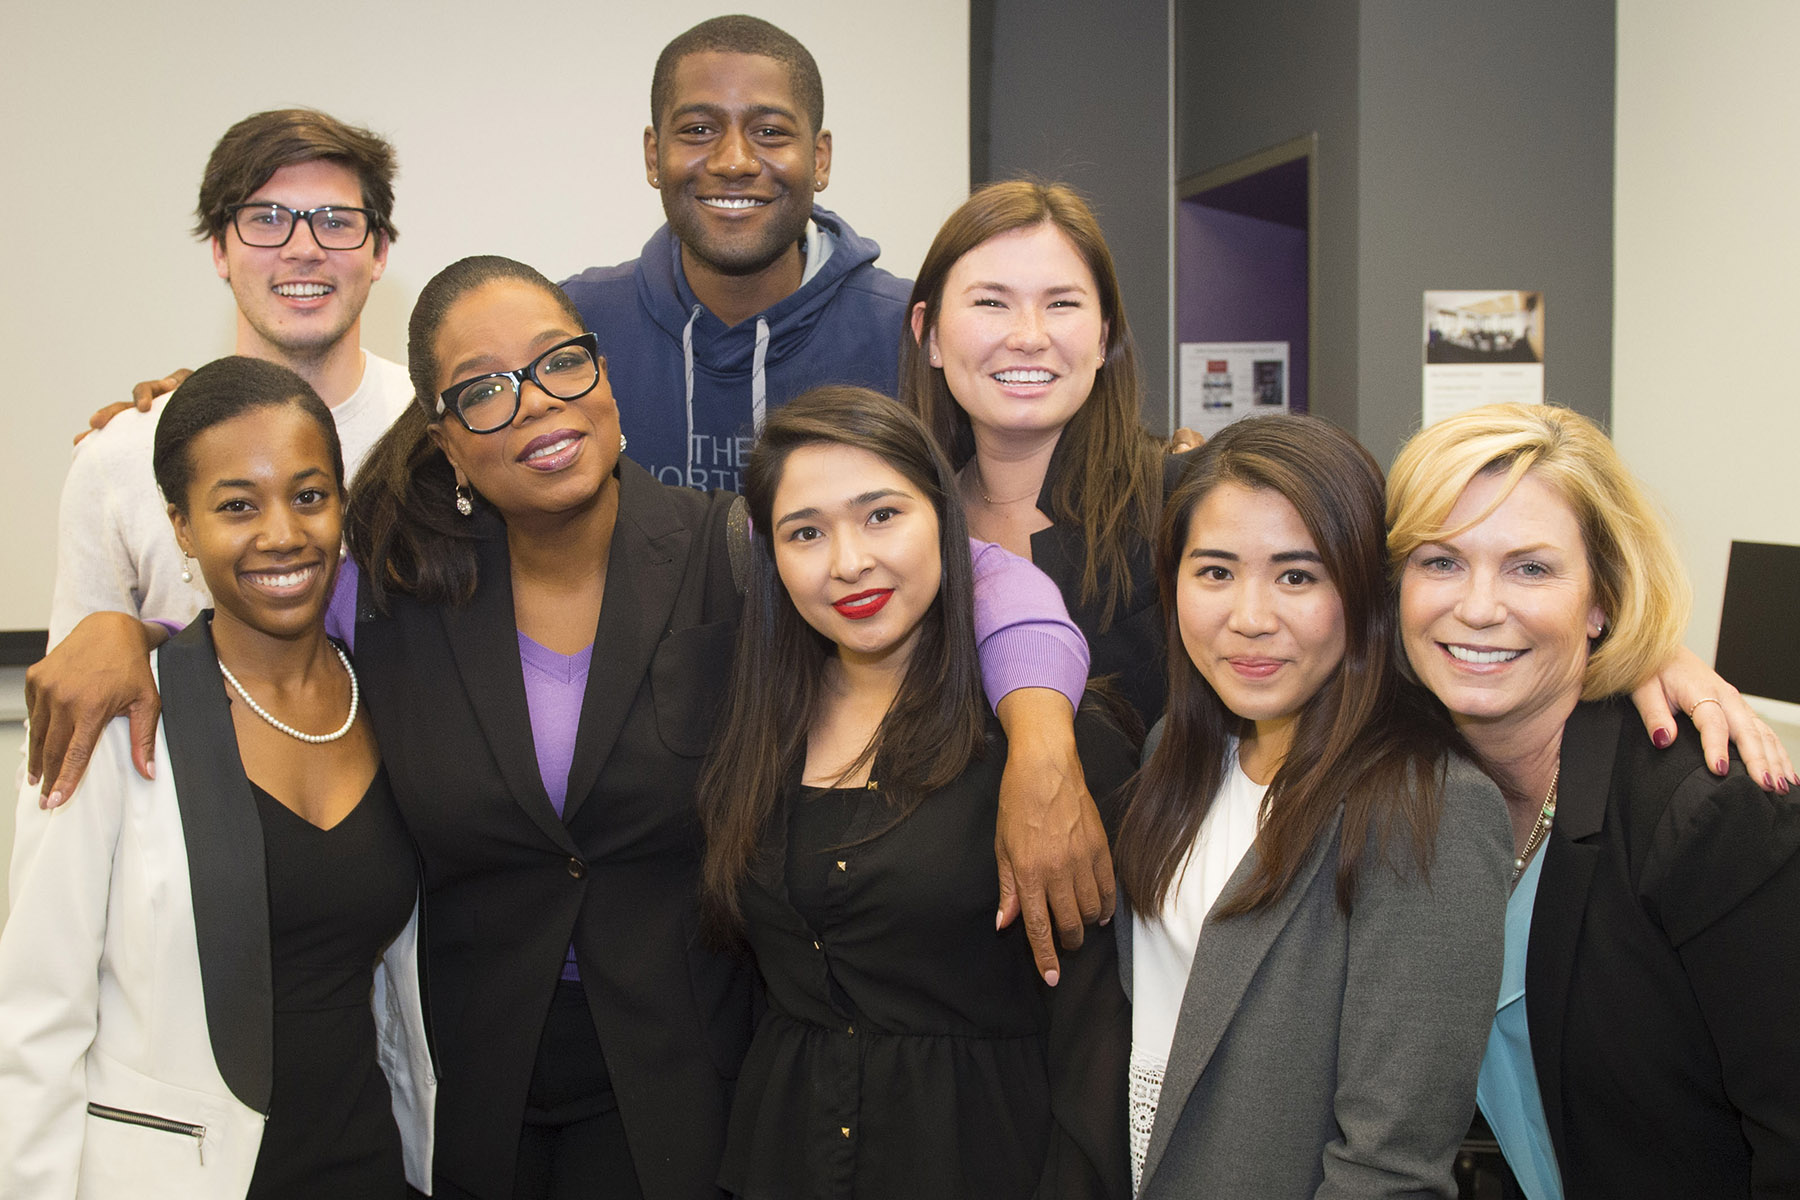 Oprah Winfrey with Annenberg students